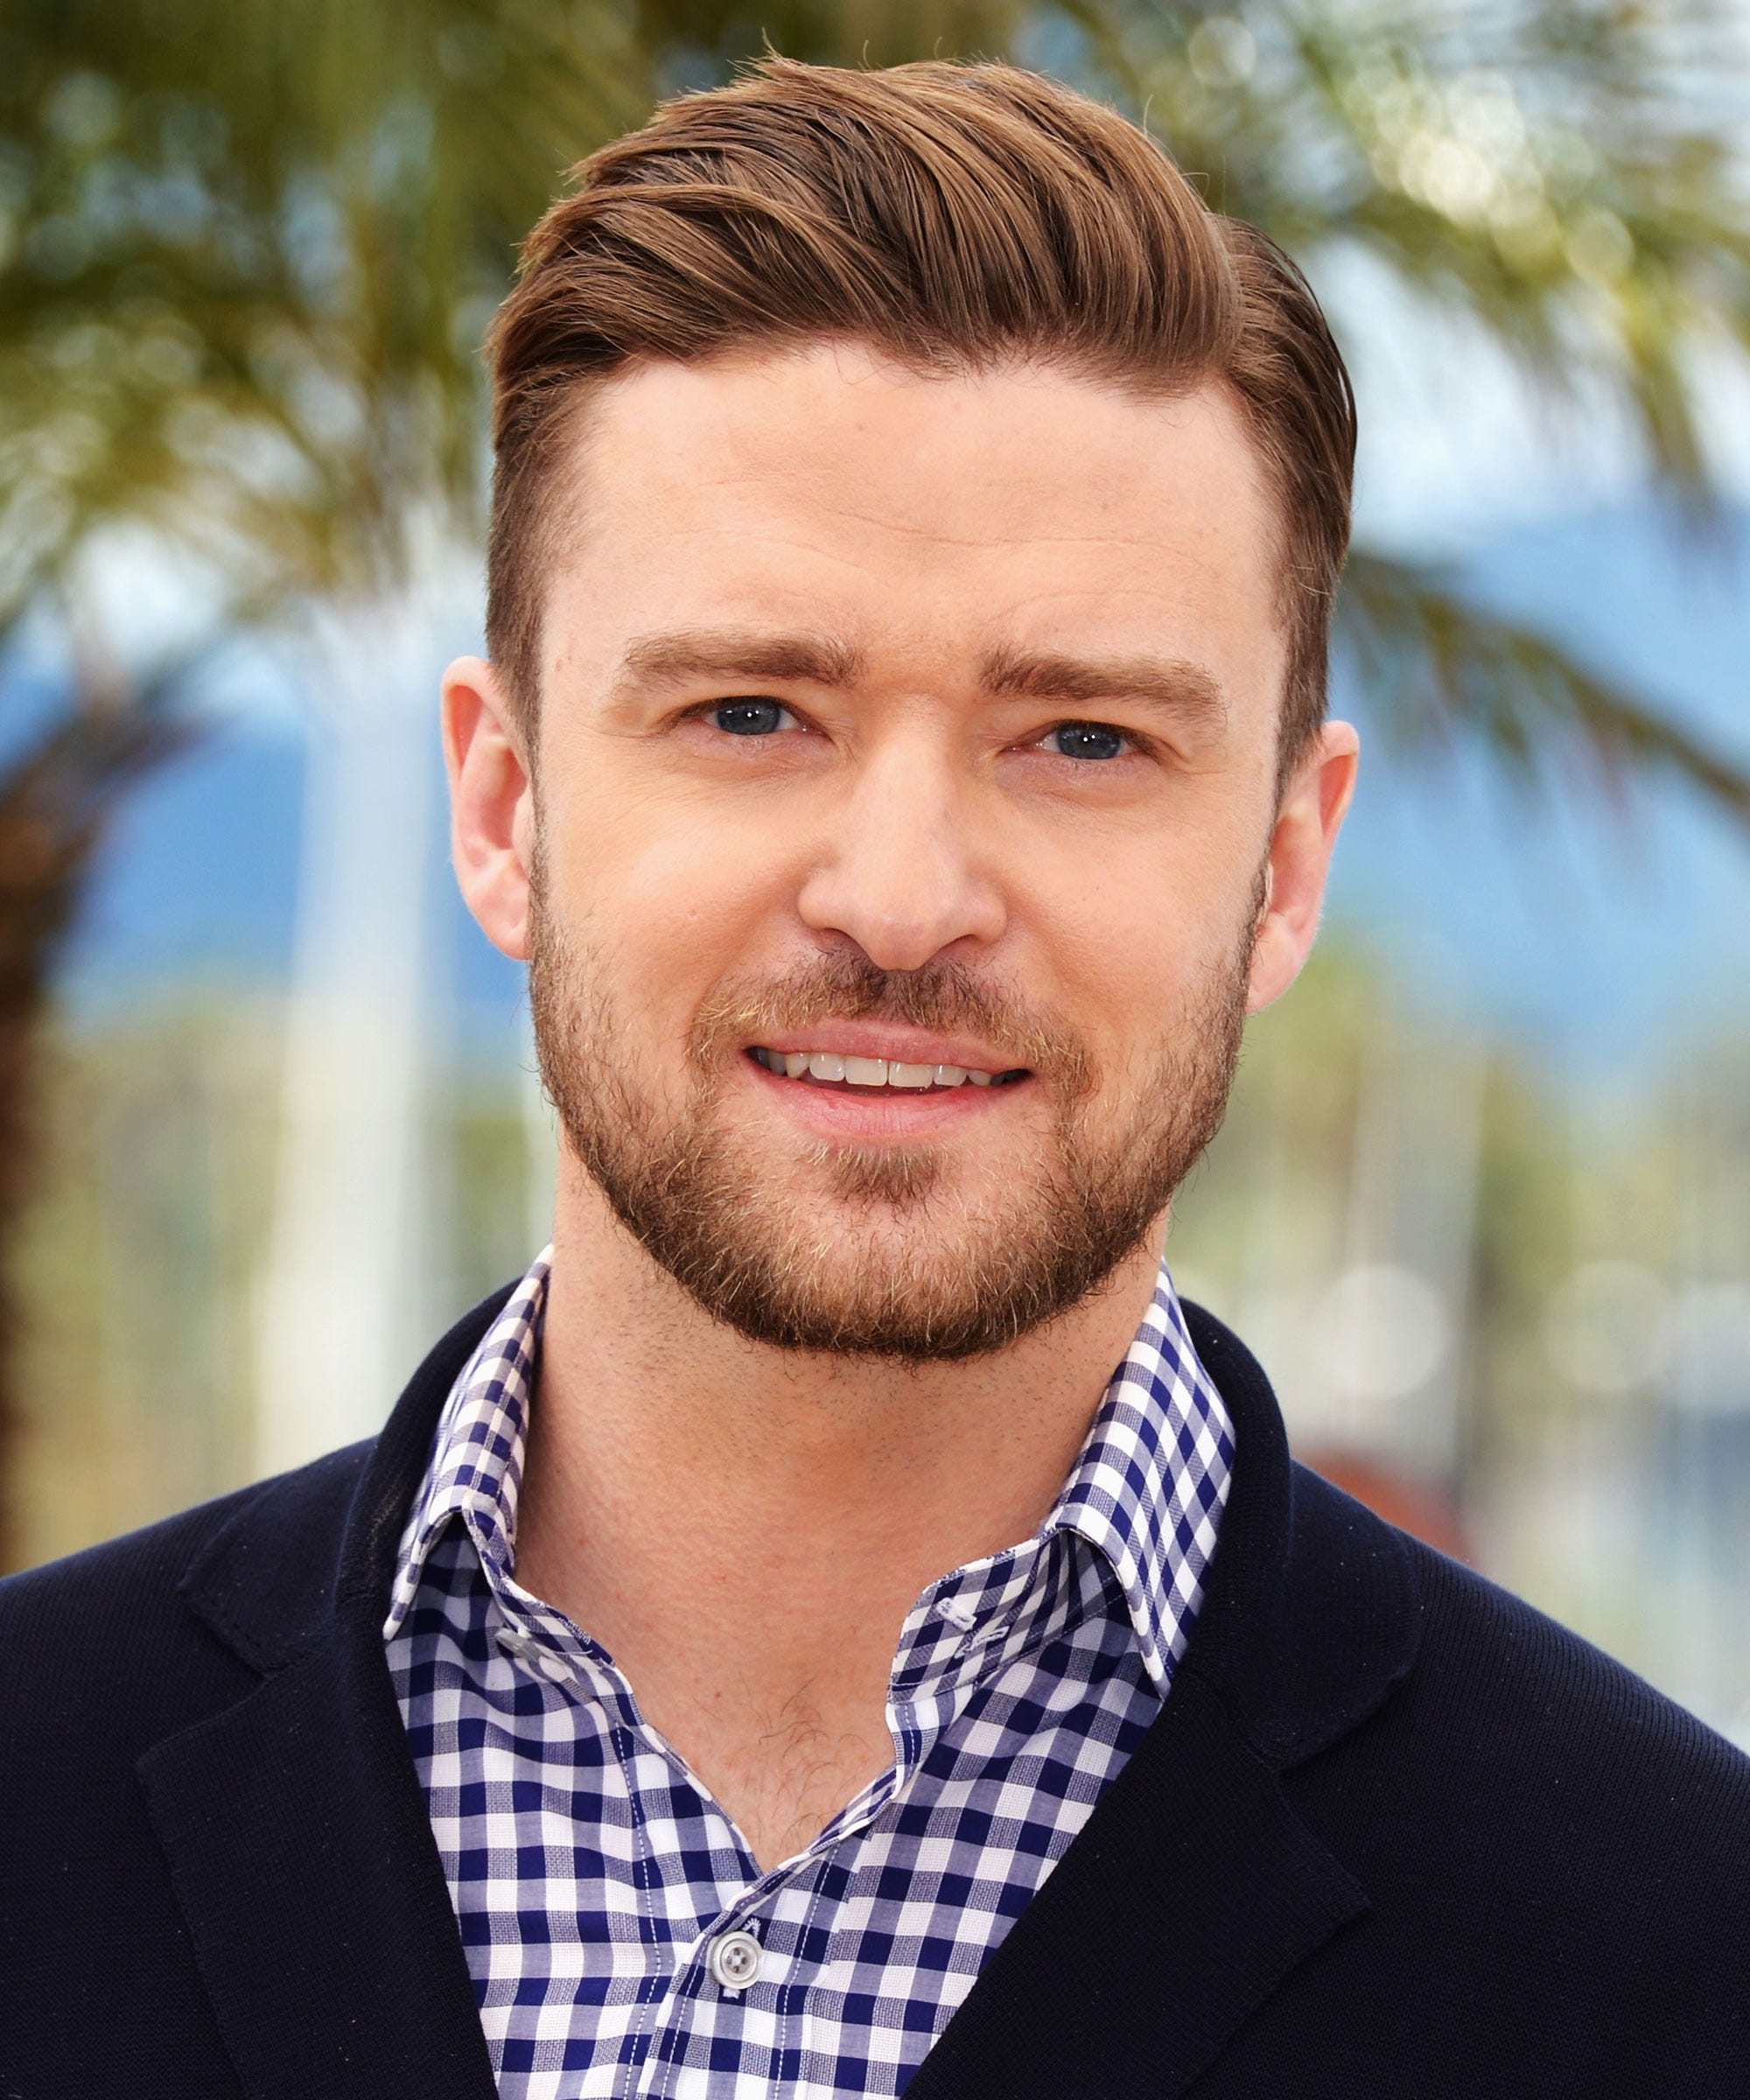 Justin Timberlake Doesnt Age His Evolution Proves It